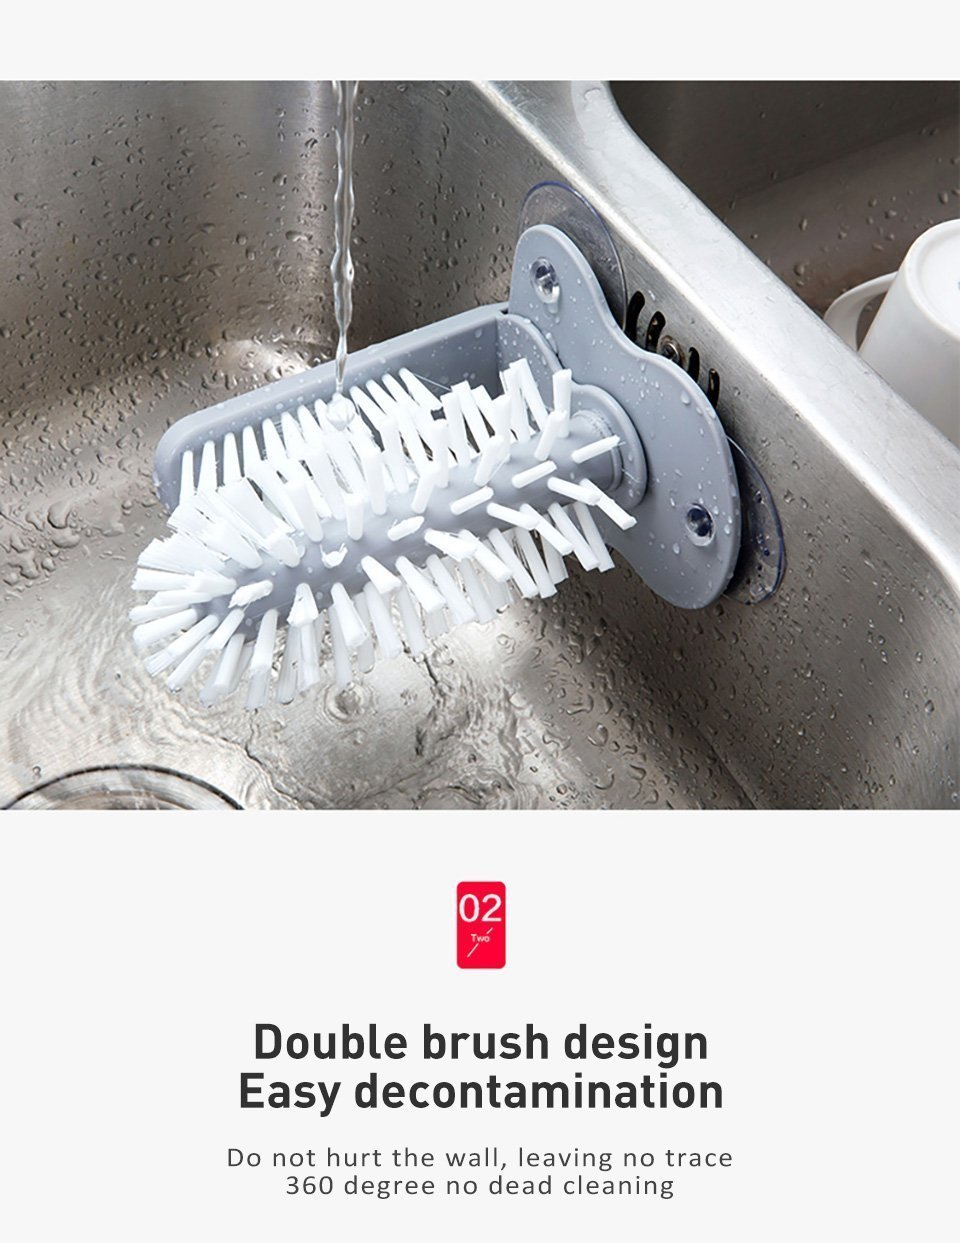 Glass, Cup & Bottle Cleaning Brush Scrubber